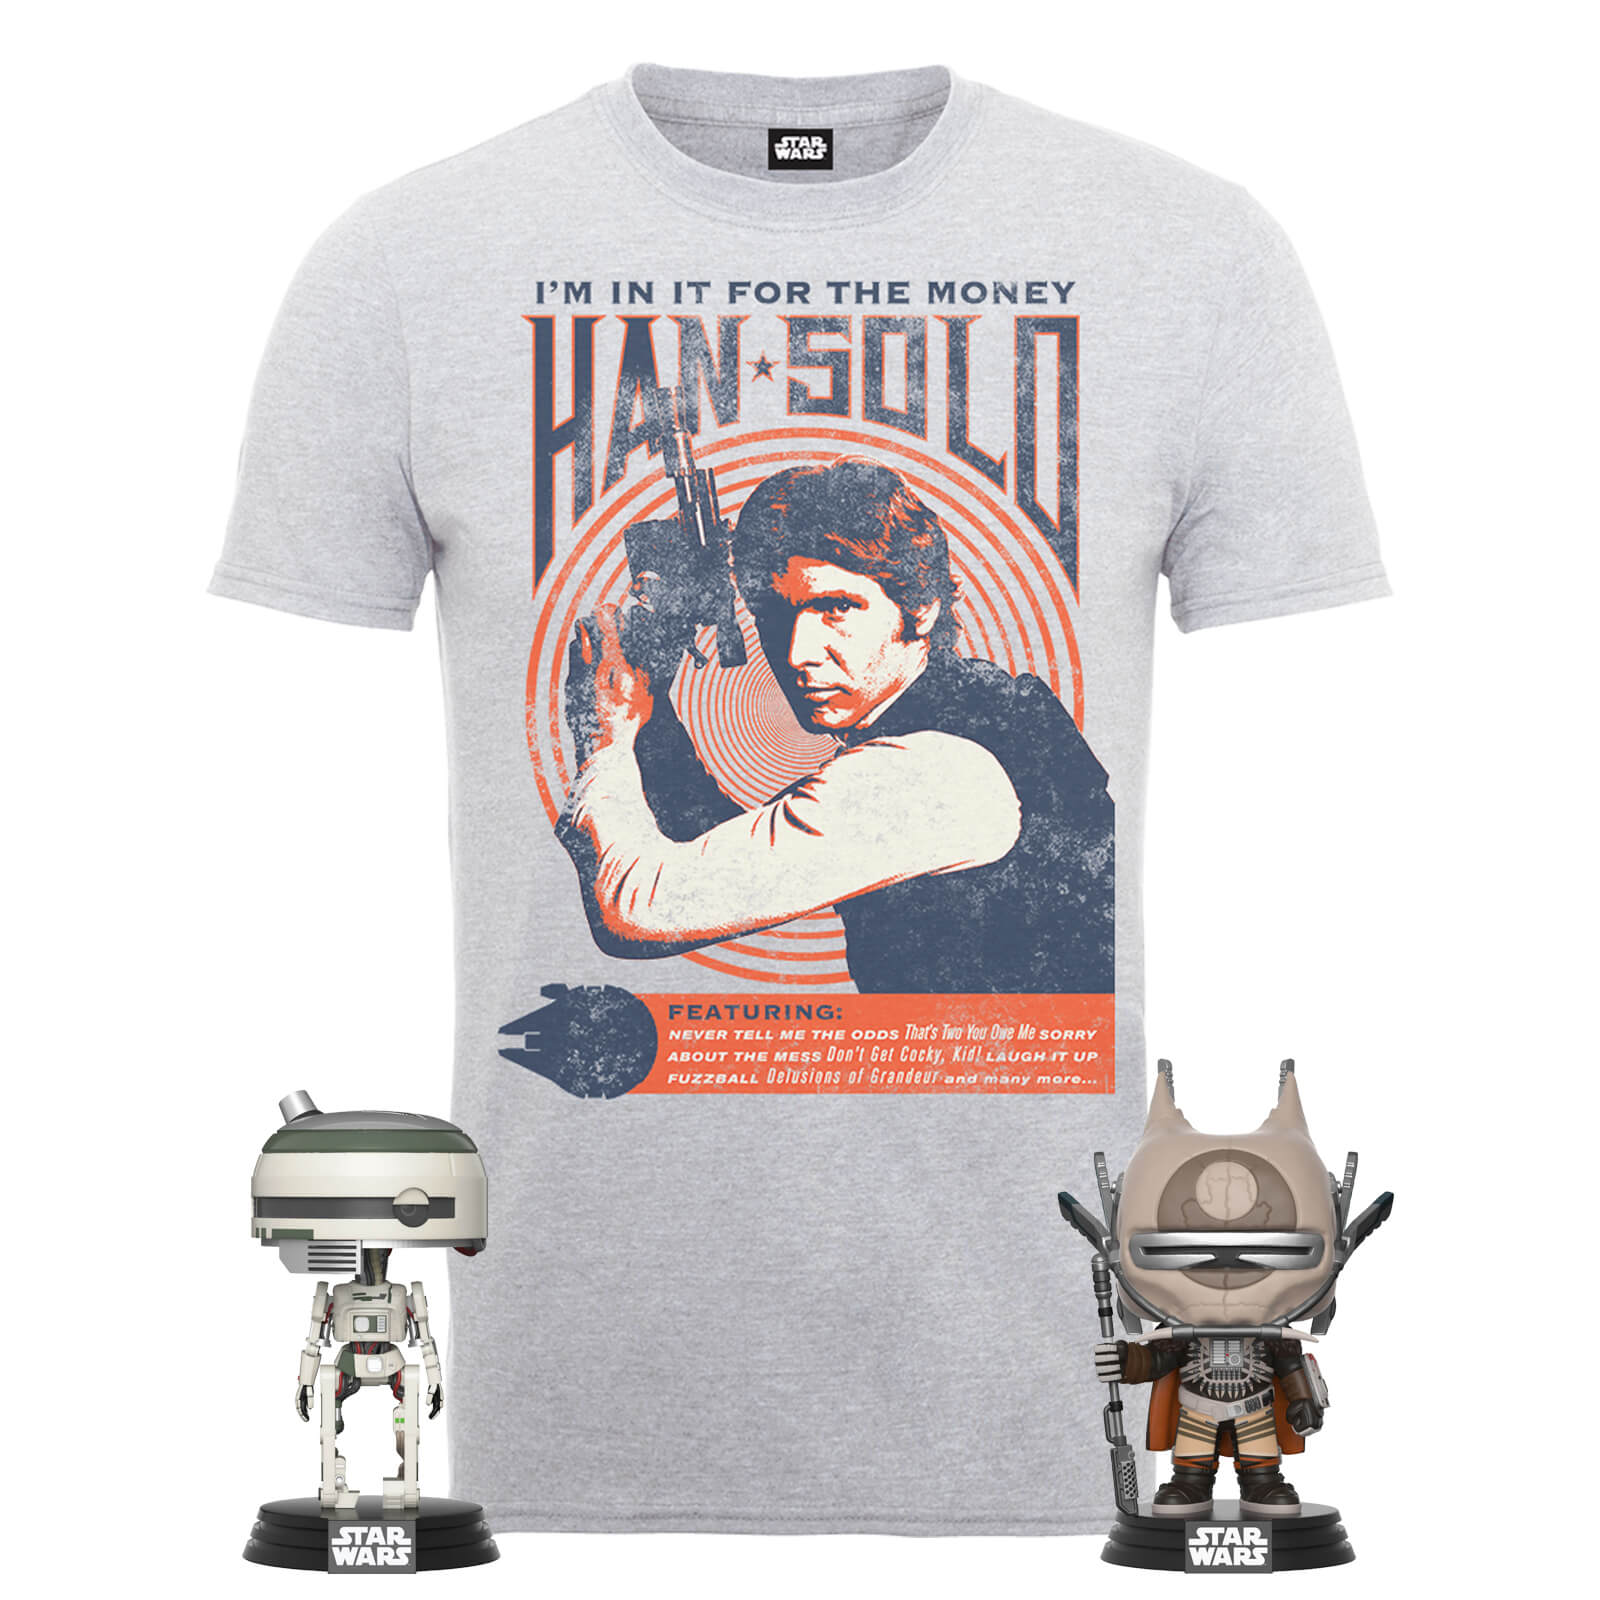 https://www.zavvi.es/moda/pack-star-wars-han-solo-camiseta-2-pop/12483053.html